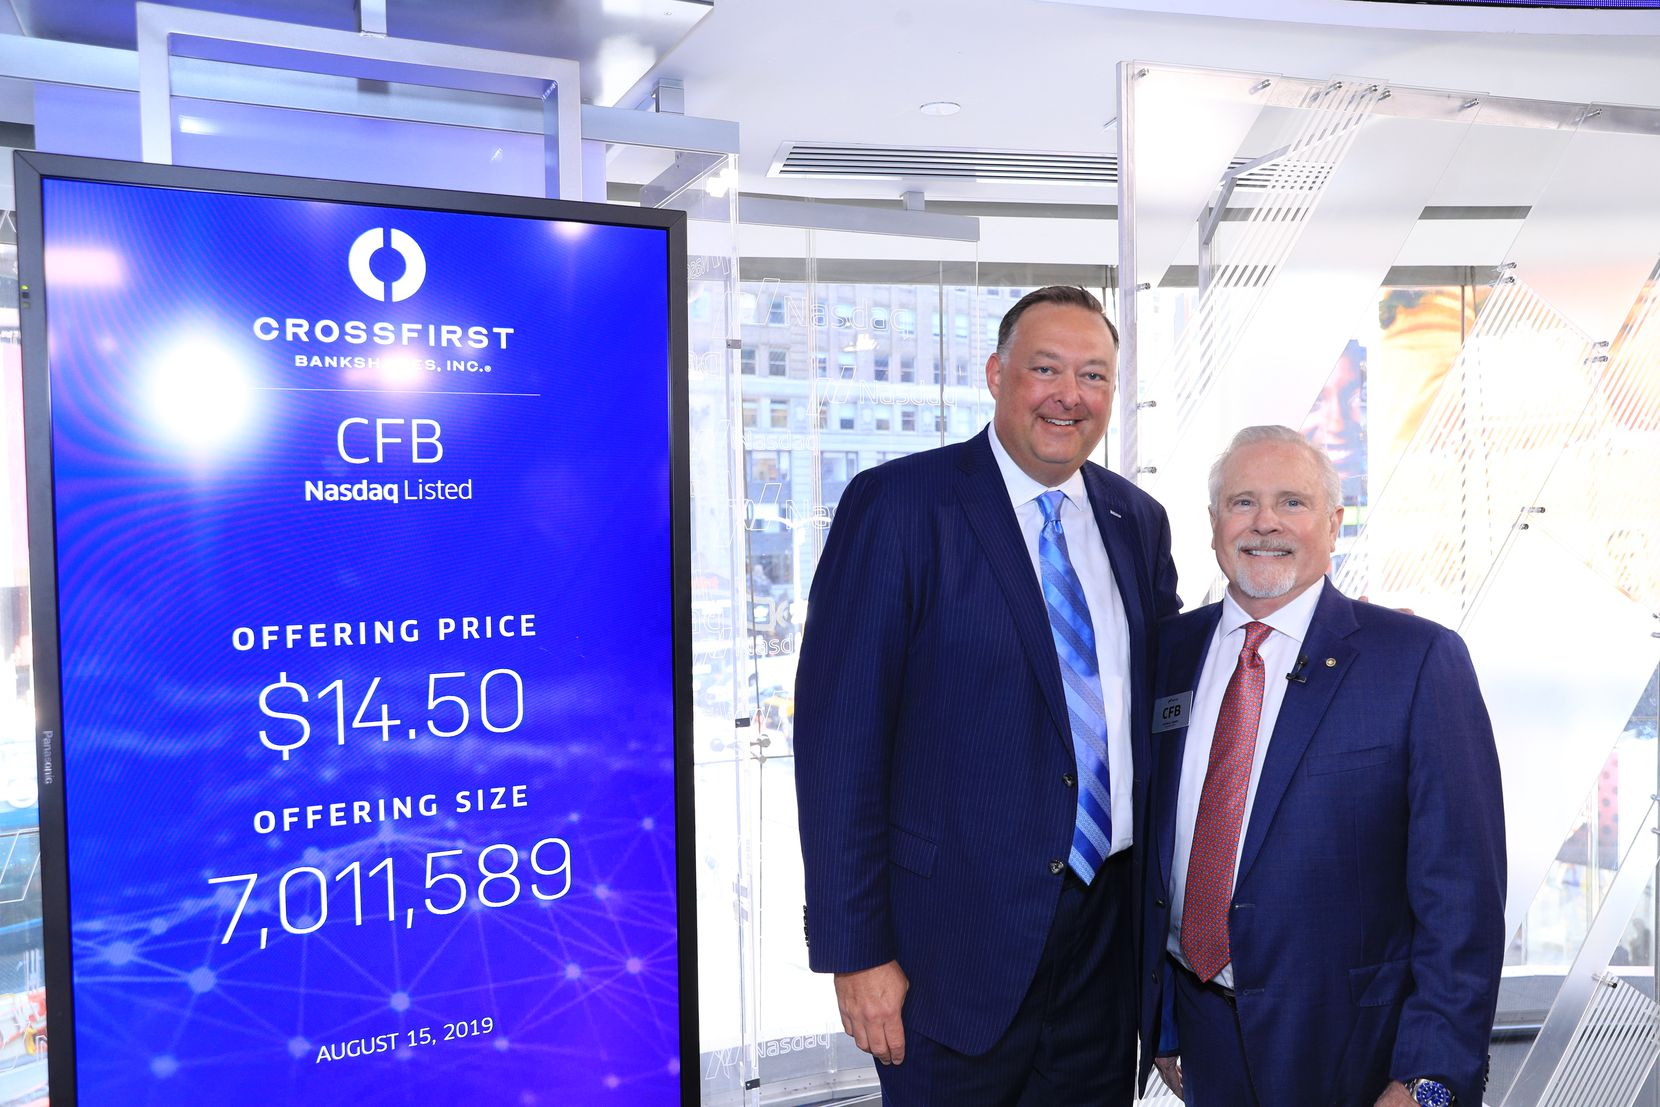 Shares of CrossFirst Bankshares started trading on the Nasdaq on Thursday, Aug. 15, 2019. CrossFirst Bank CEO Mike Maddox, left, and CrossFirst Bankshares CEO George Jones traveled to New York City for the occasion.